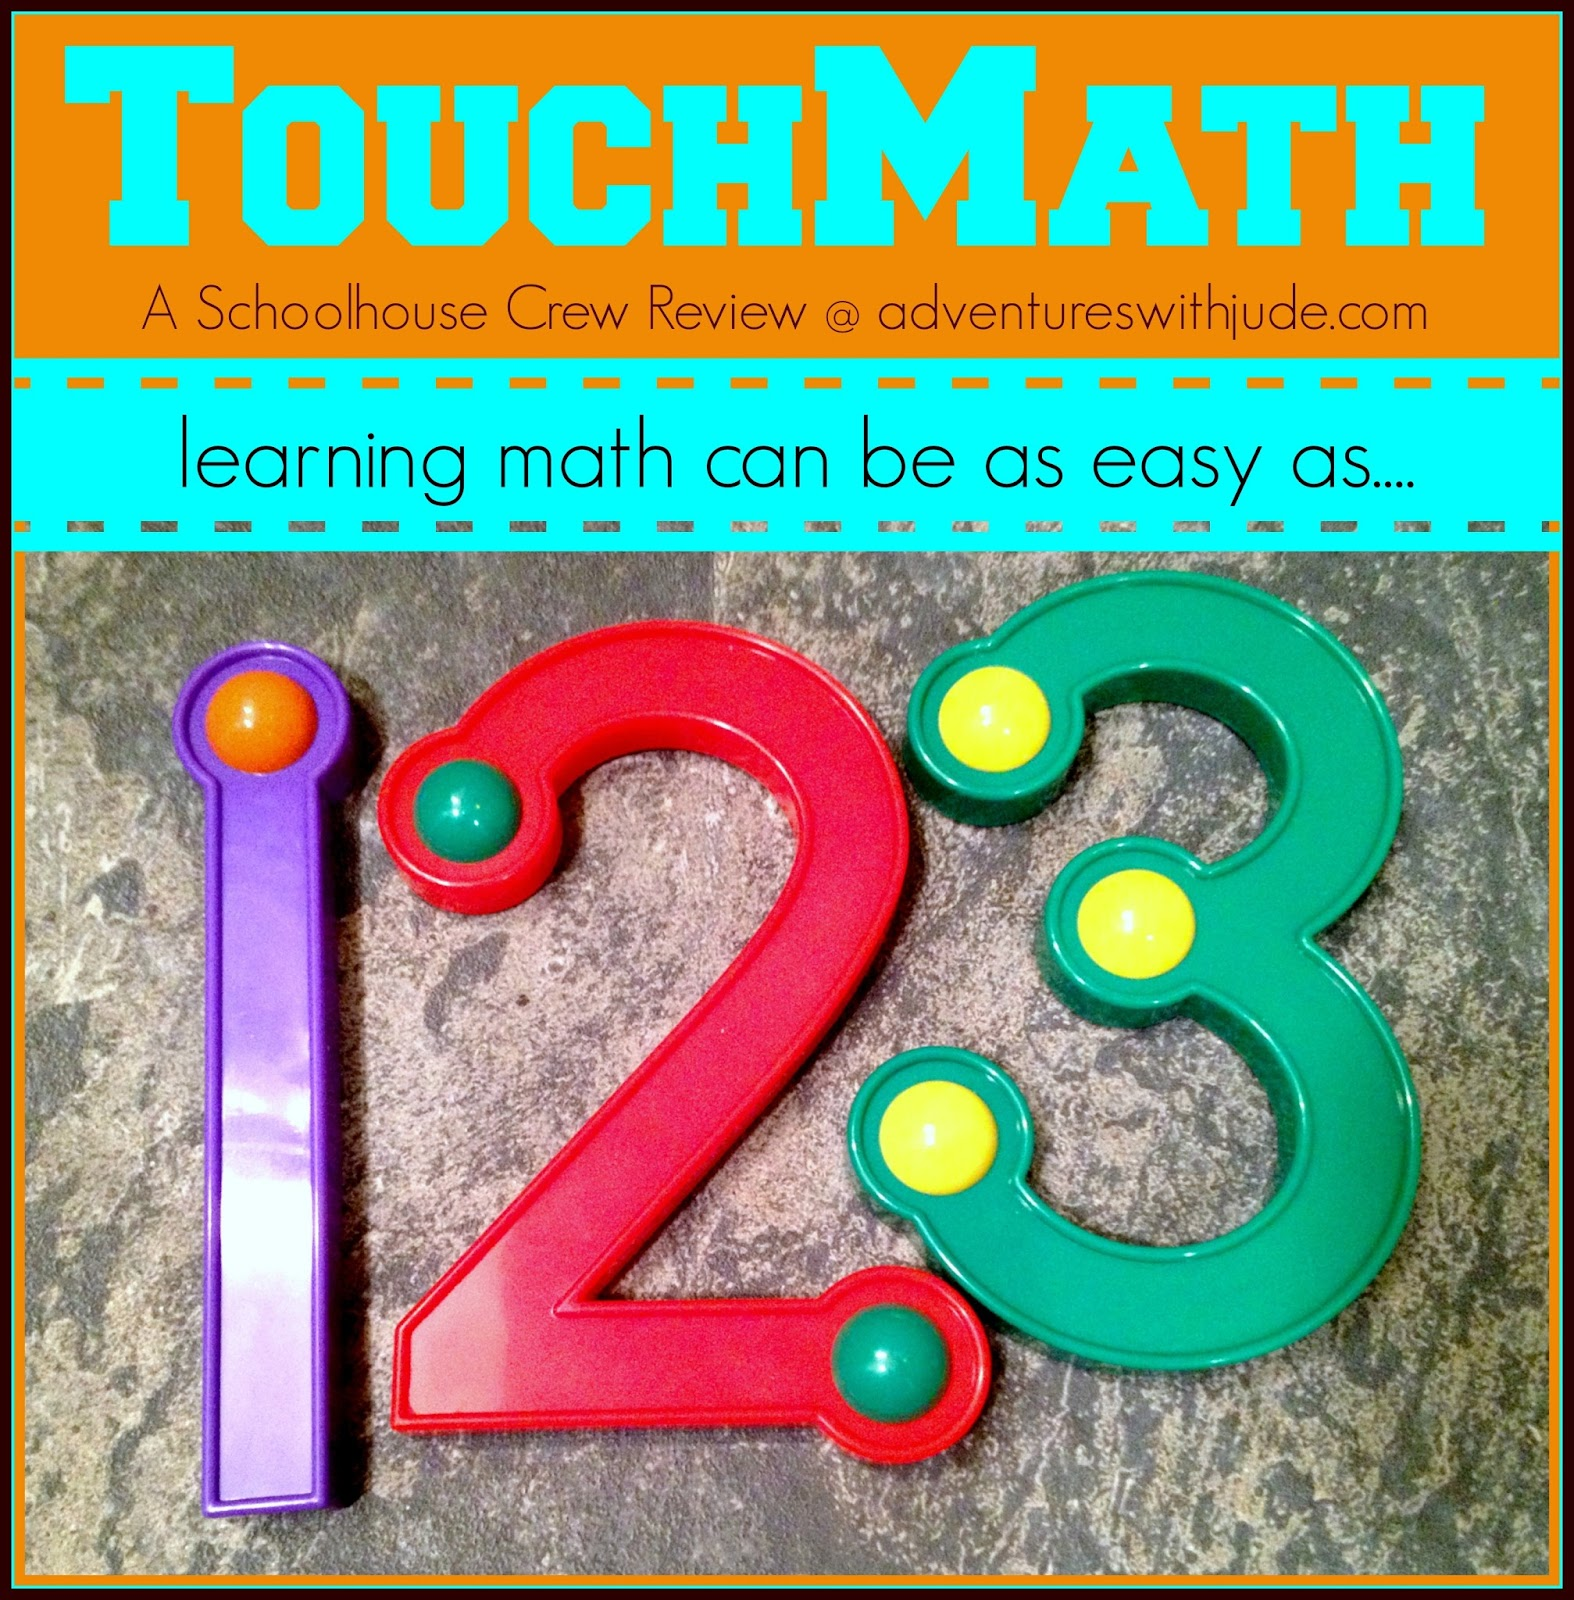 Adventures with Jude: TouchMath (A Schoolhouse Crew Review)